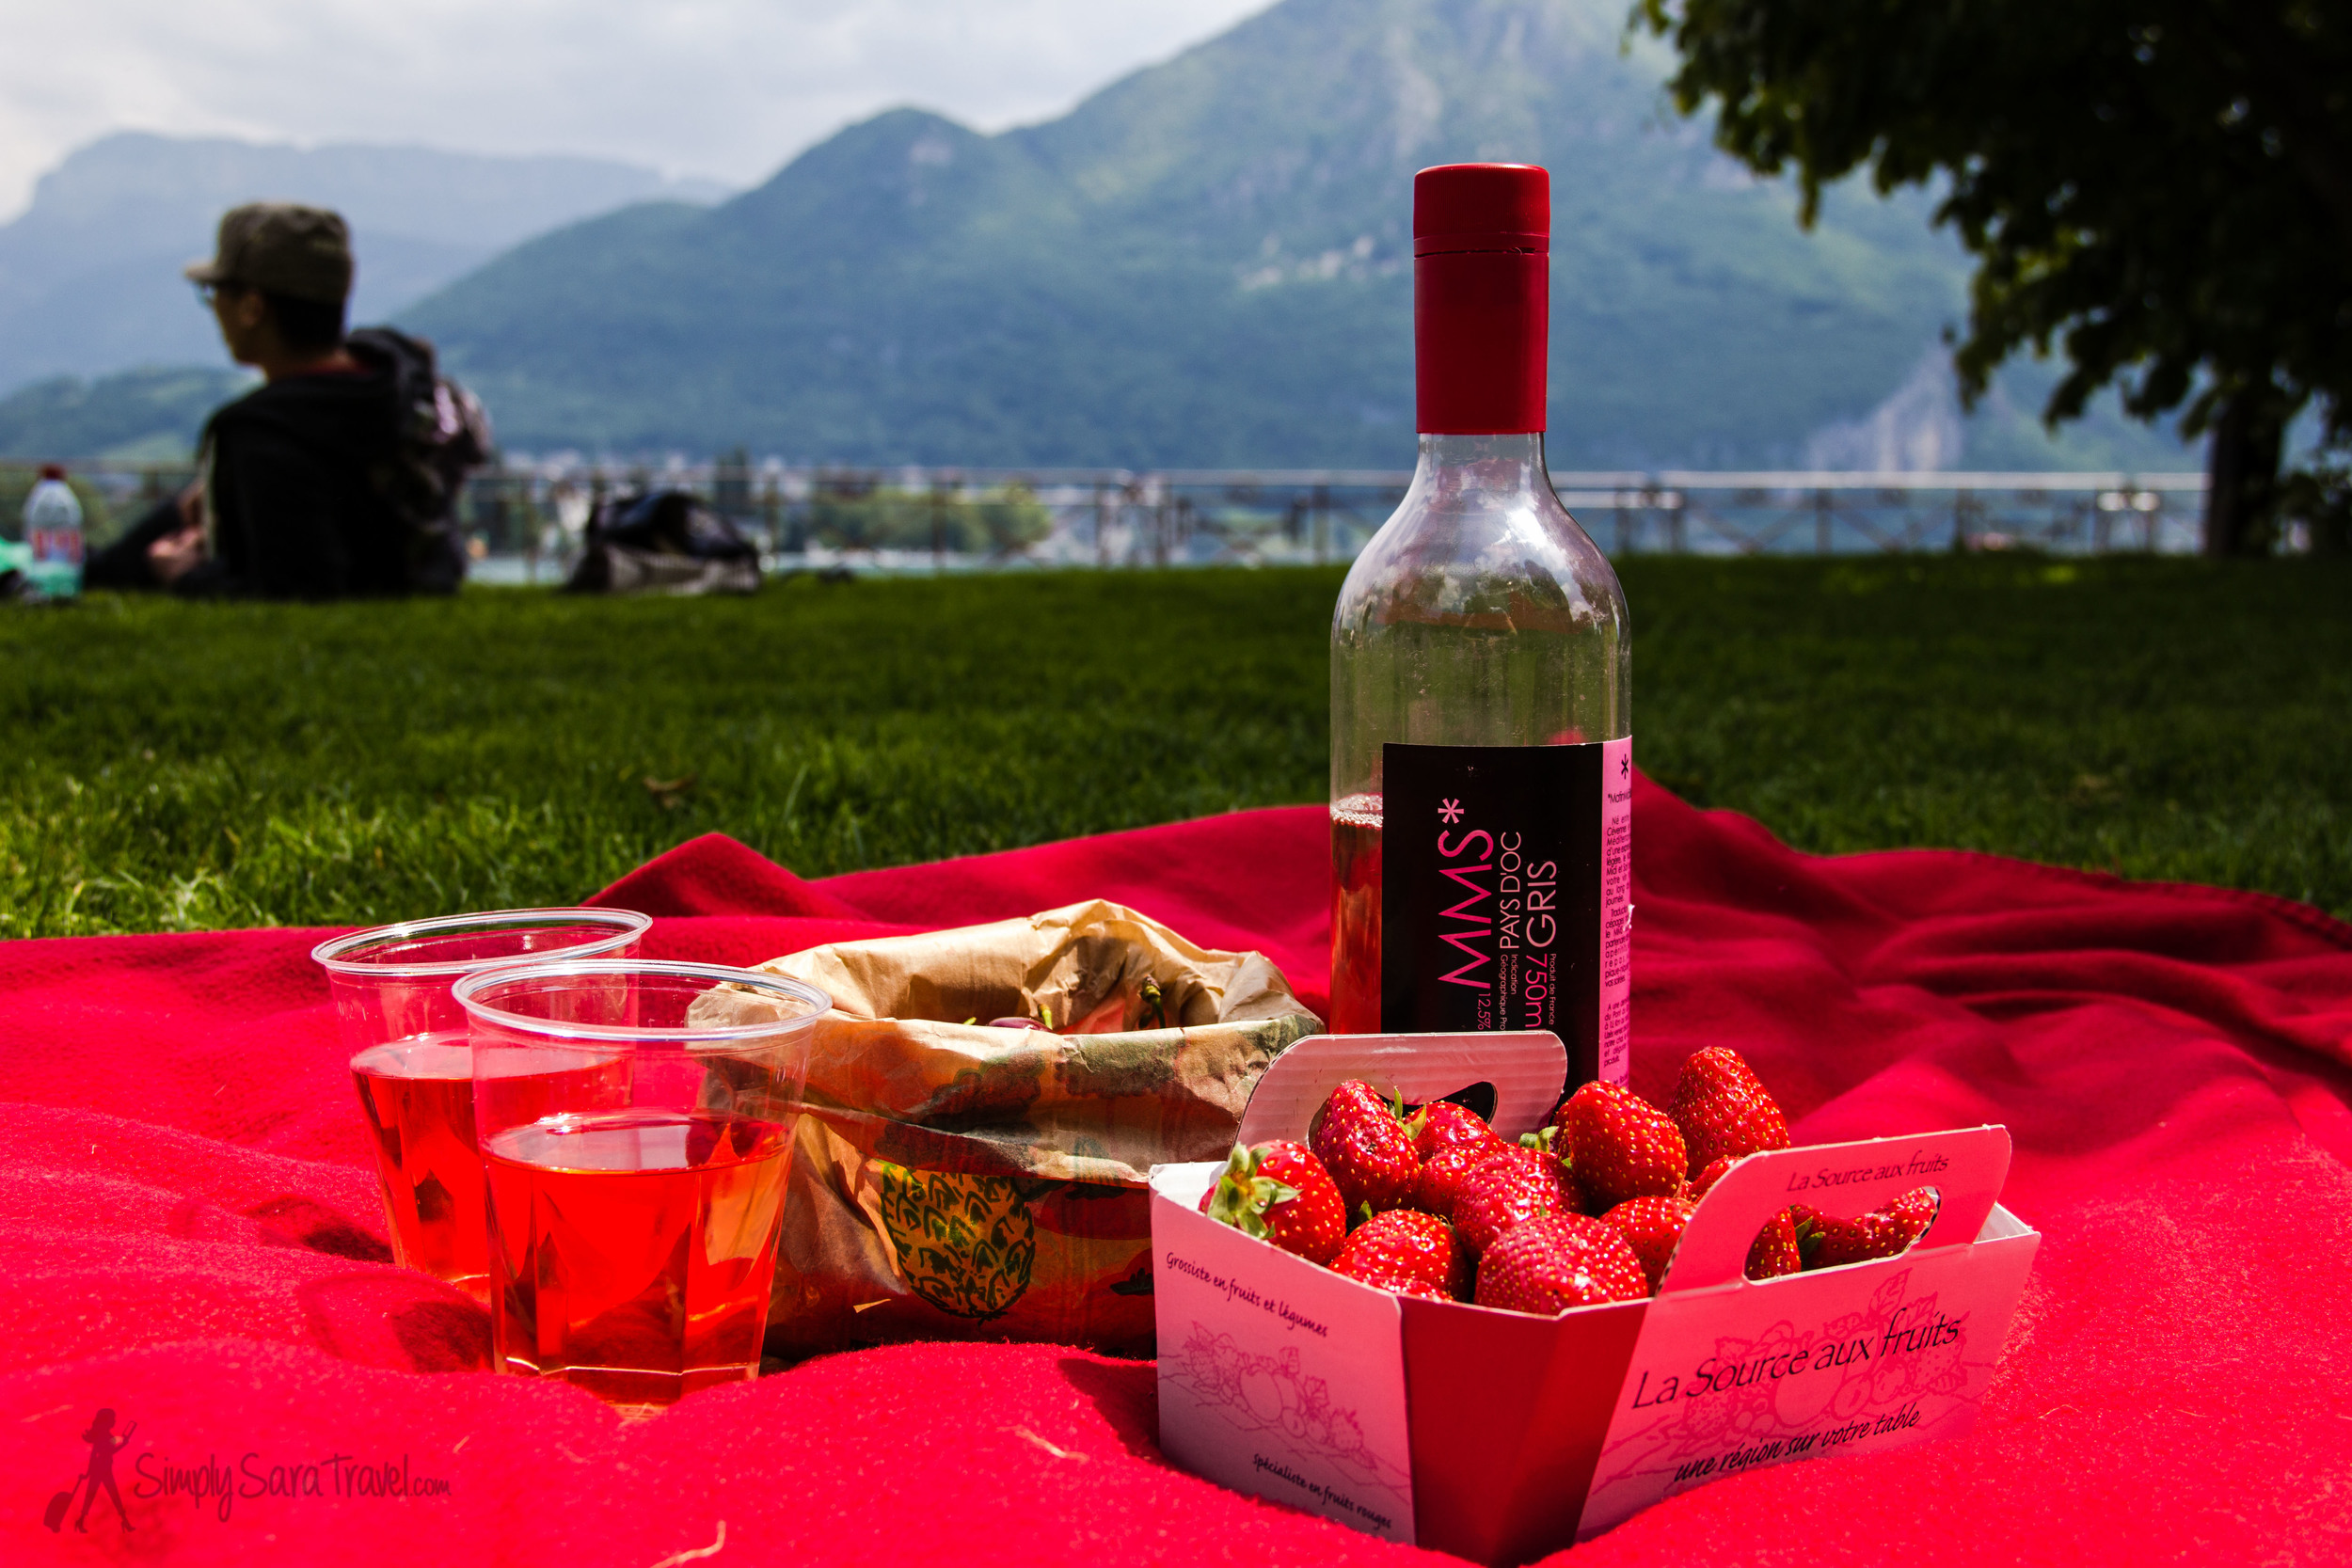 Honestly, we didn't realize we had selected all pink-colored edibles until we placed the strawberries, cherries, and ros é wine from the market in Annecy onto our red picnic blanket!